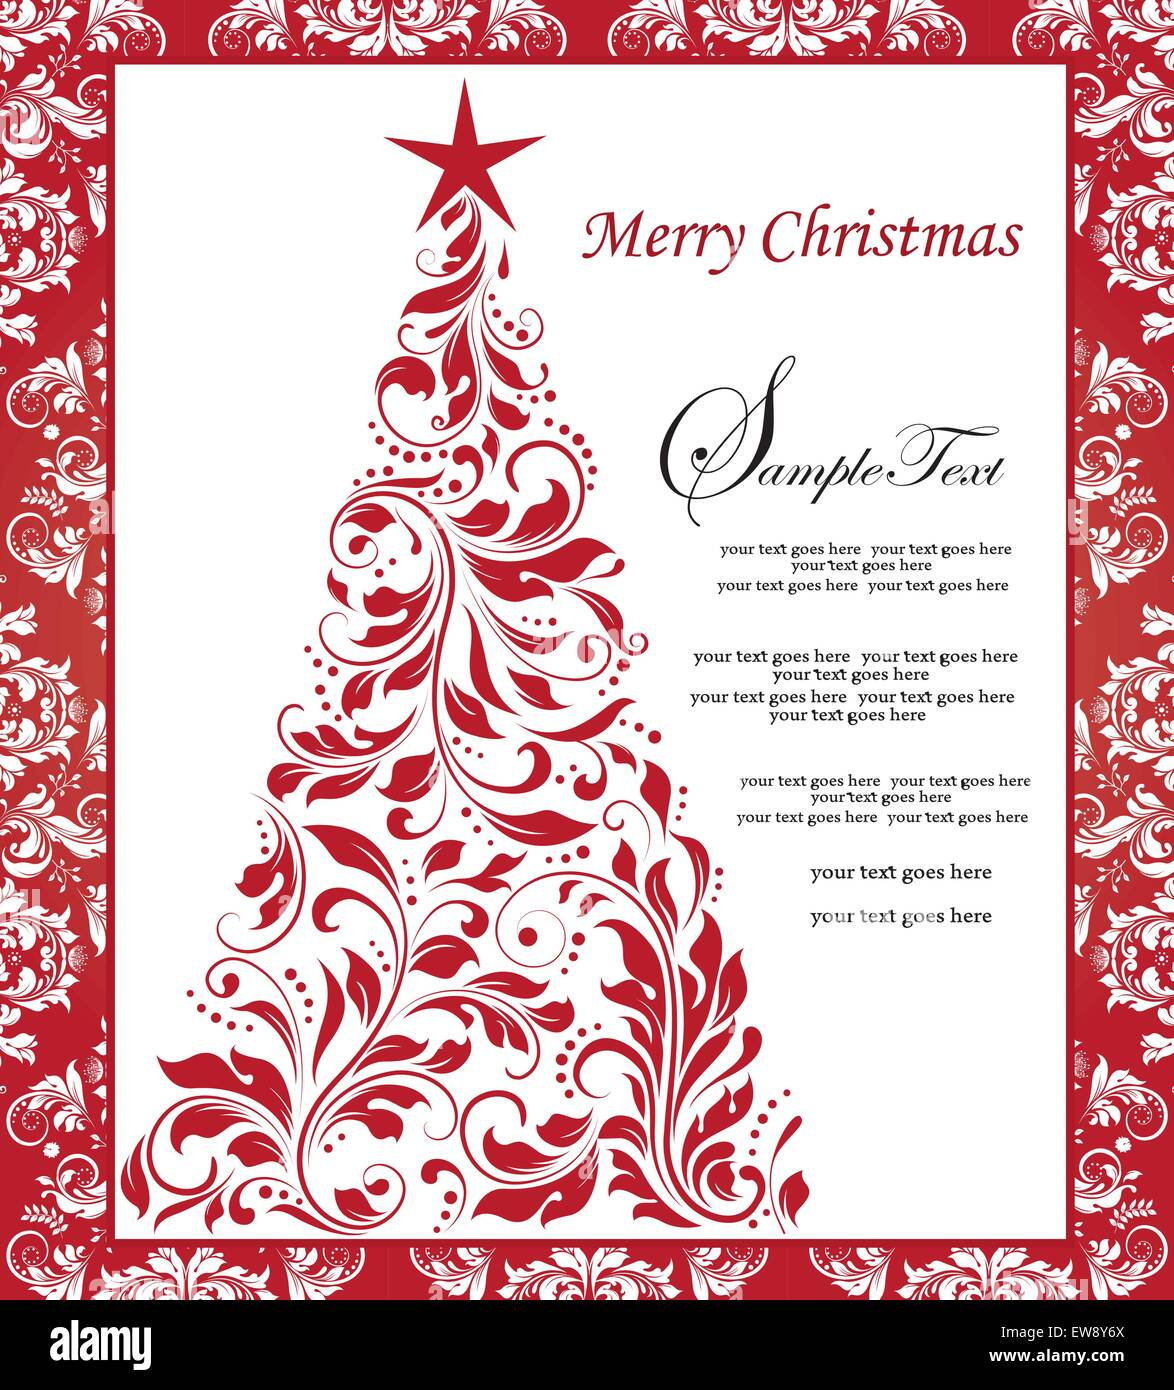 christmas card borders red download